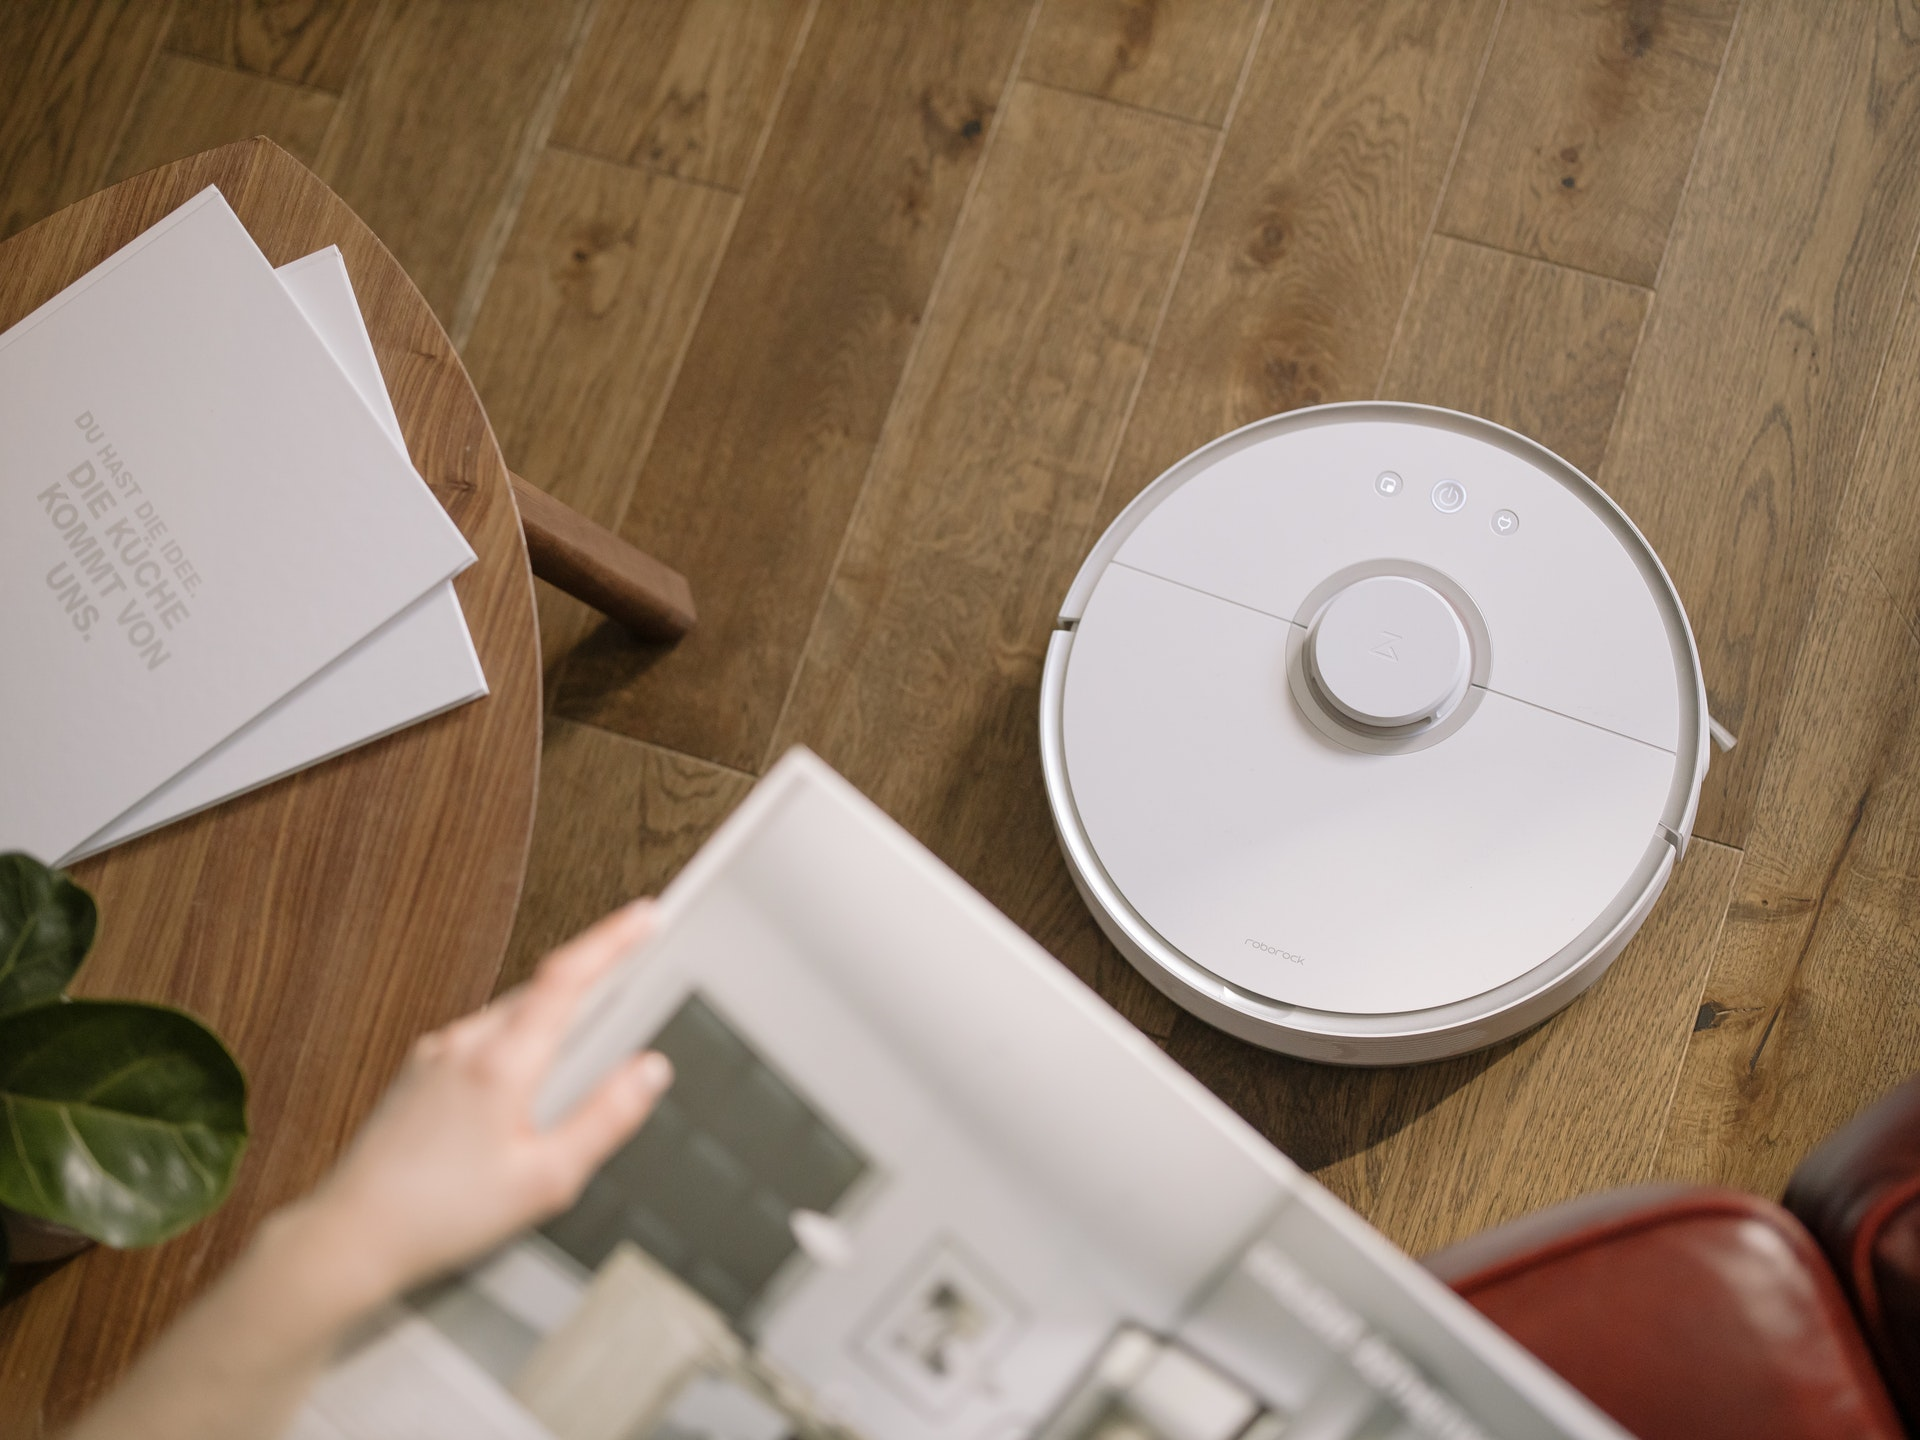 Cleaning using a robot vacuum is a gamble for any homemaker.